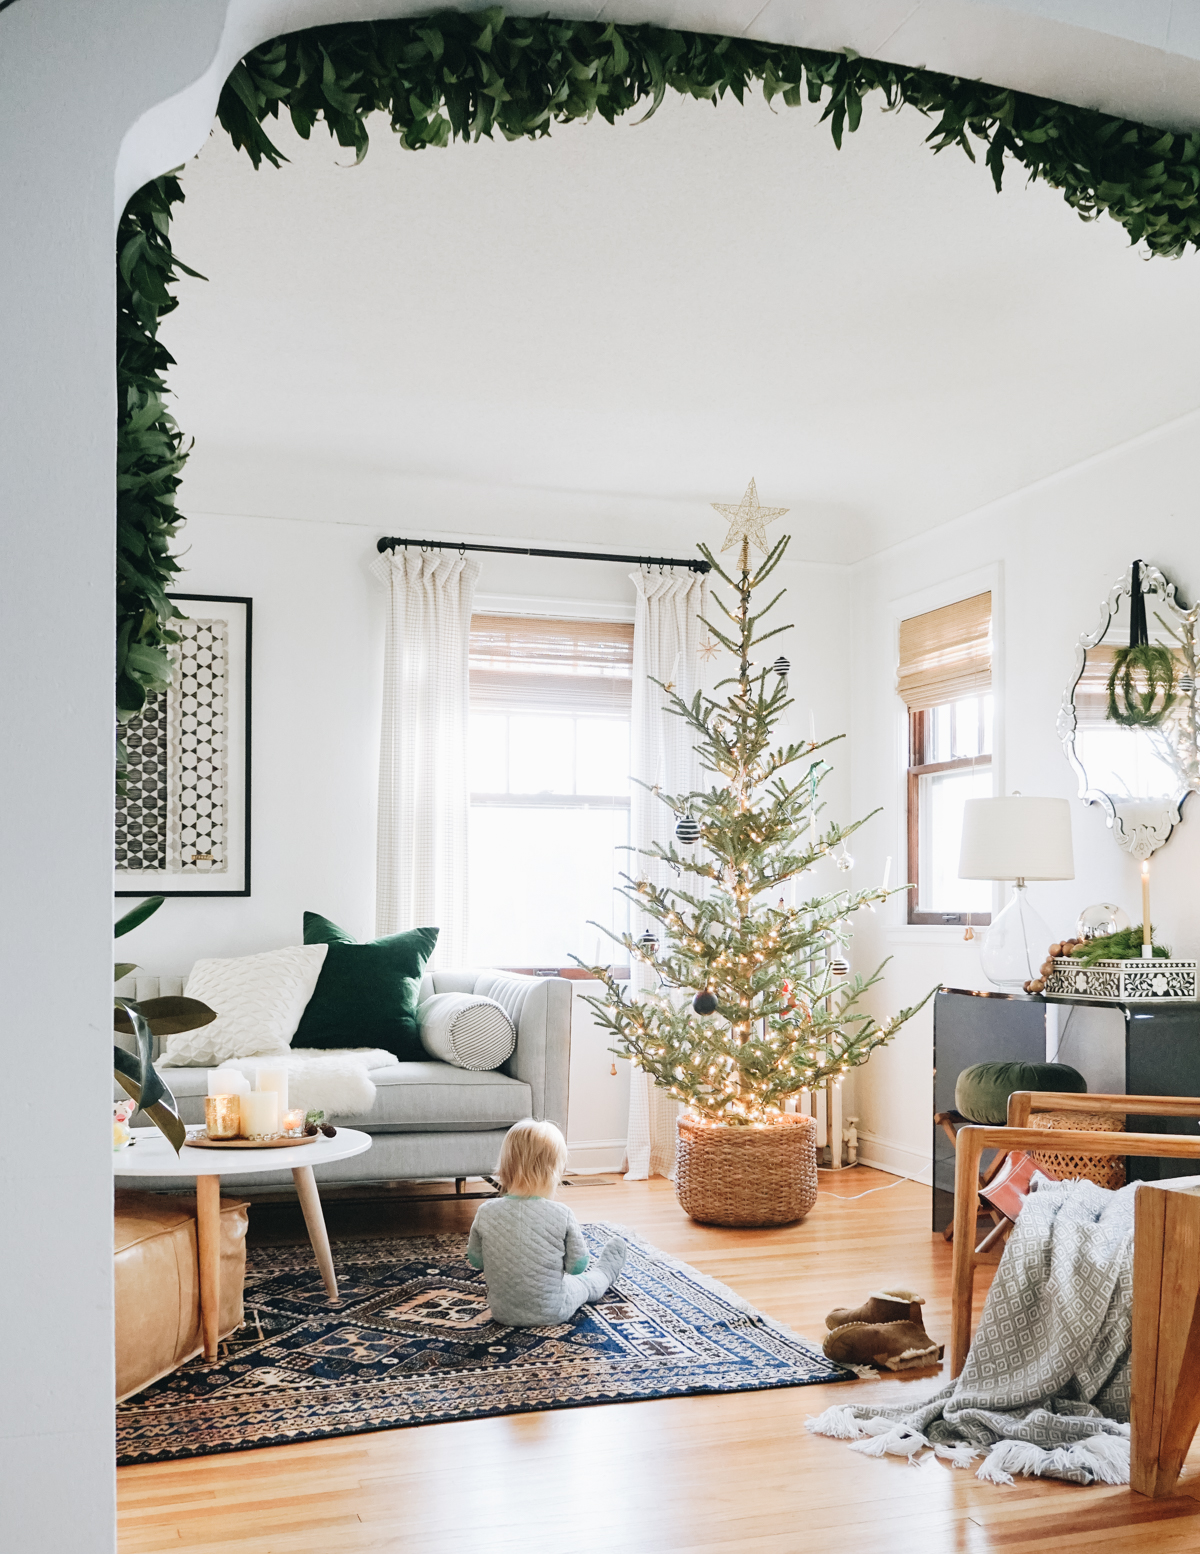 Everhem linen drapery & woven woods make this living room cozy for the holidays